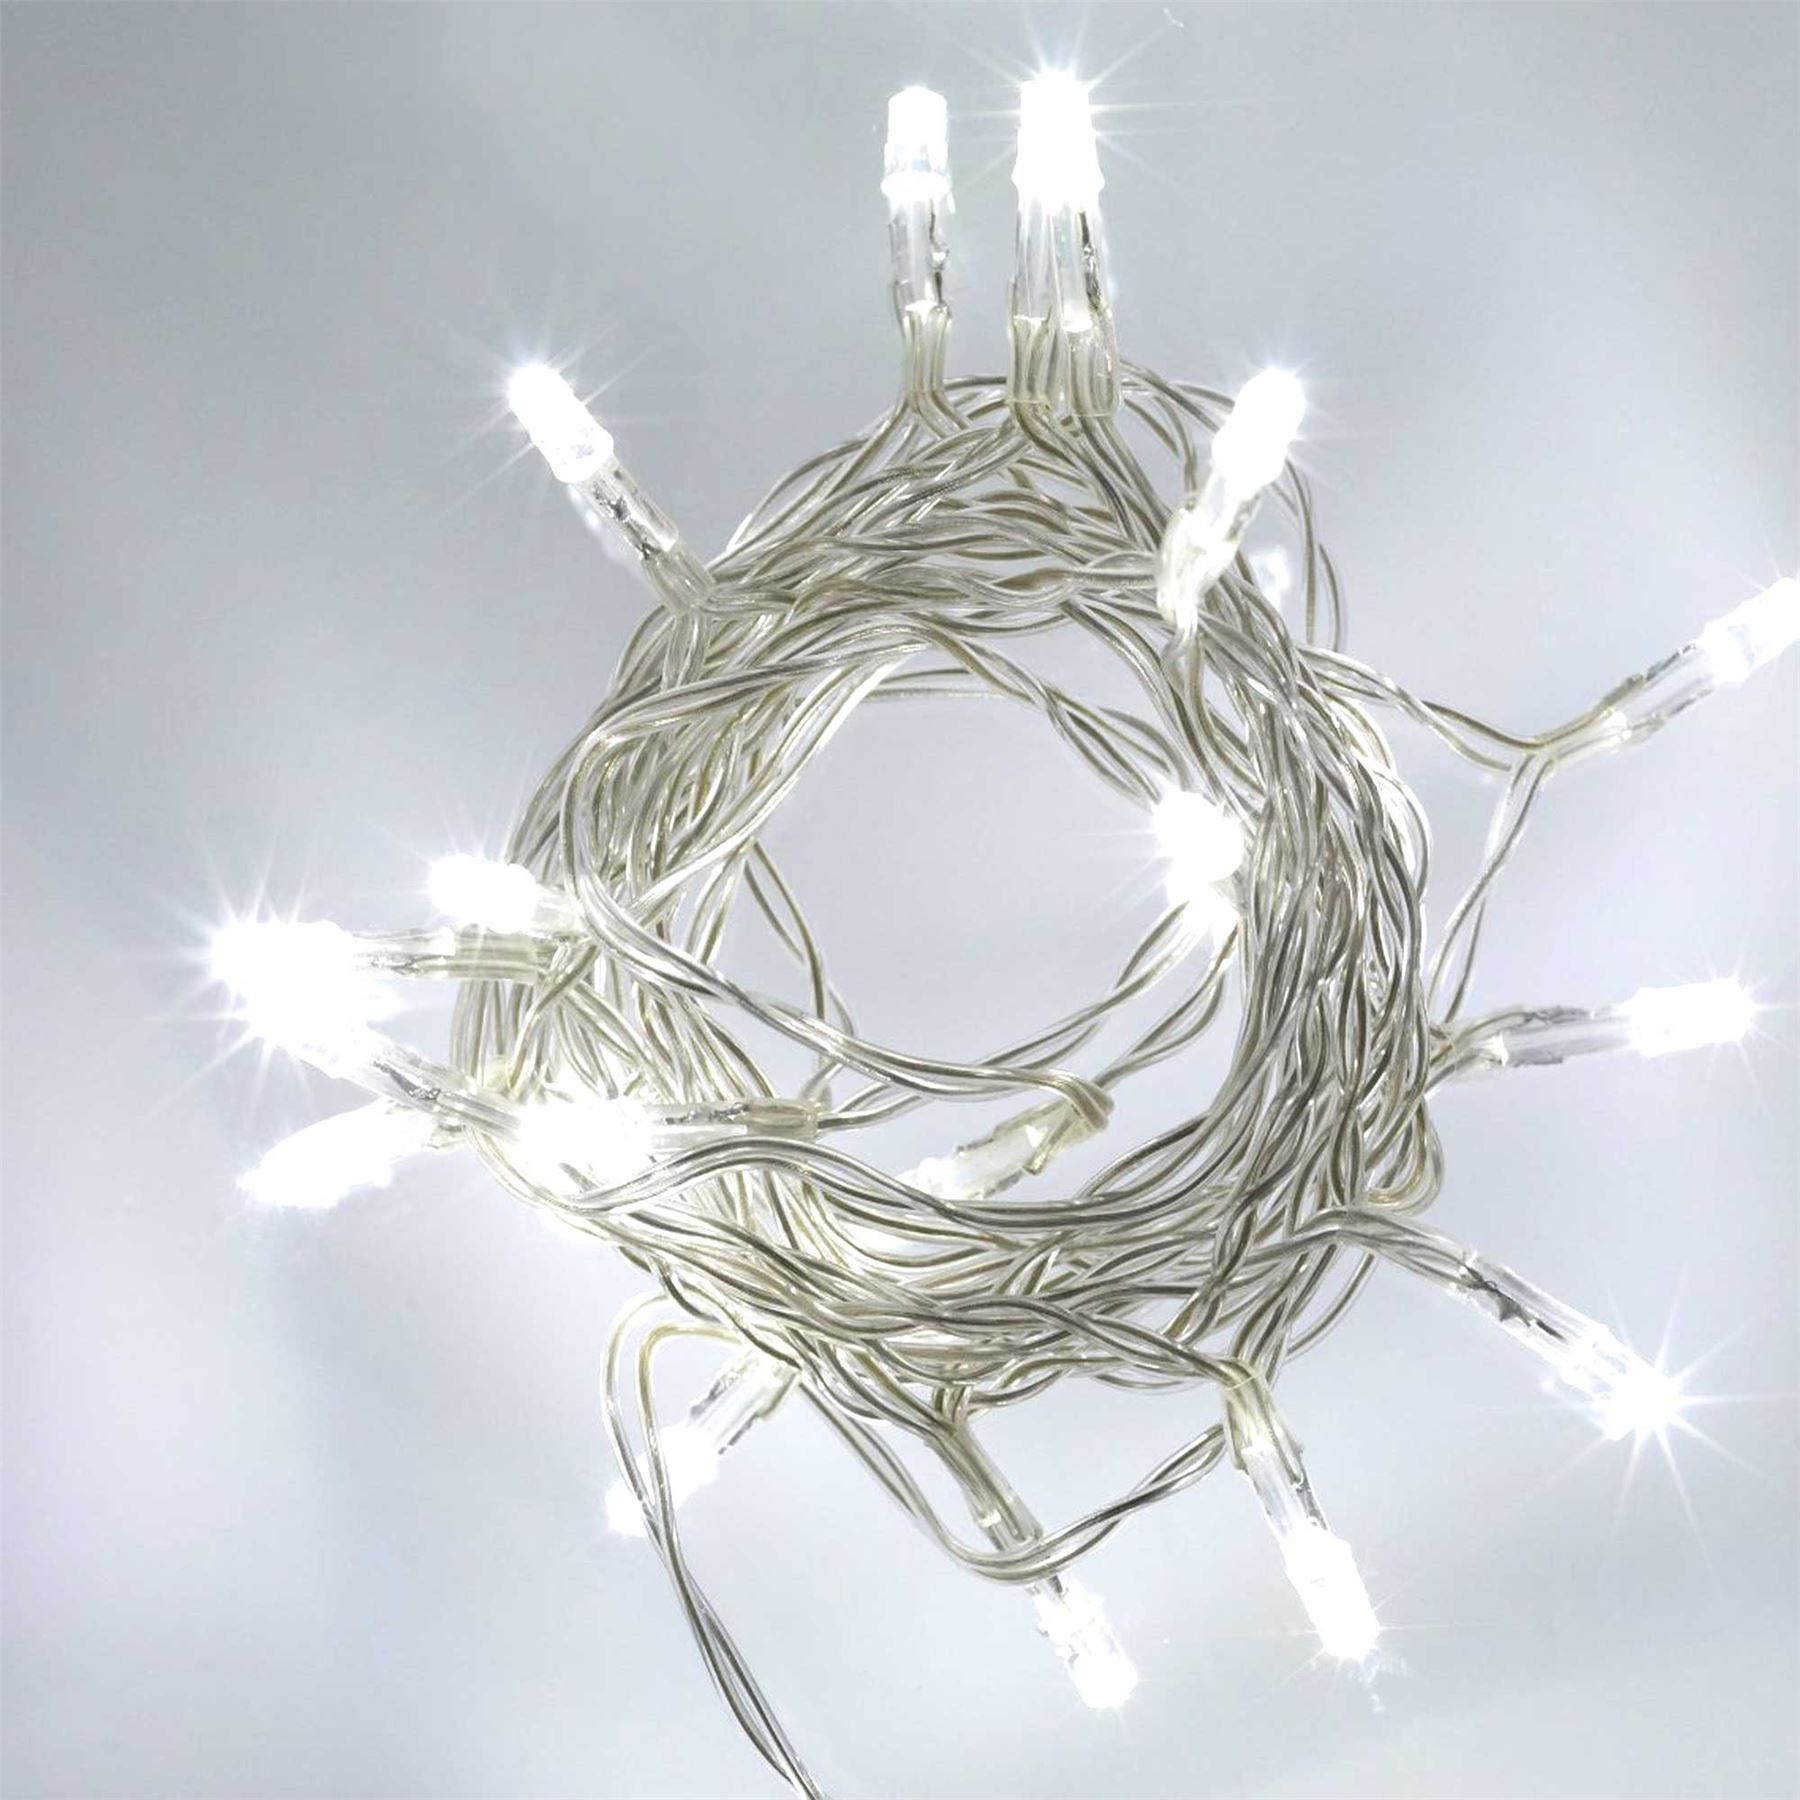 20-40-80-Clear-LED-Battery-Operated-Fairy-Lights-Christmas-Wedding-Party-Decor thumbnail 3